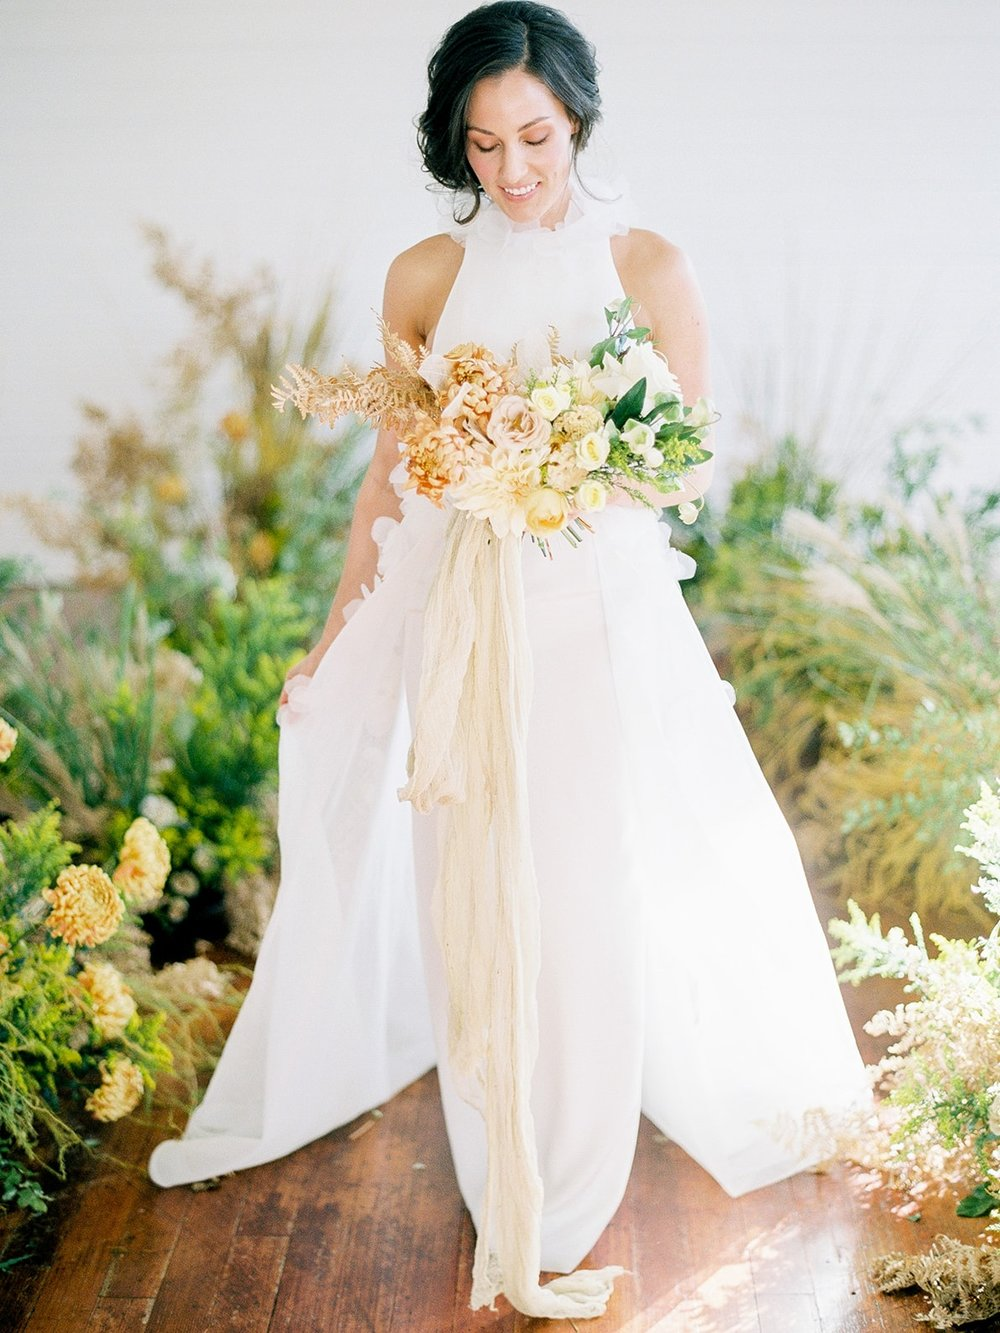 HONEY HUE - STYLED SHOOT